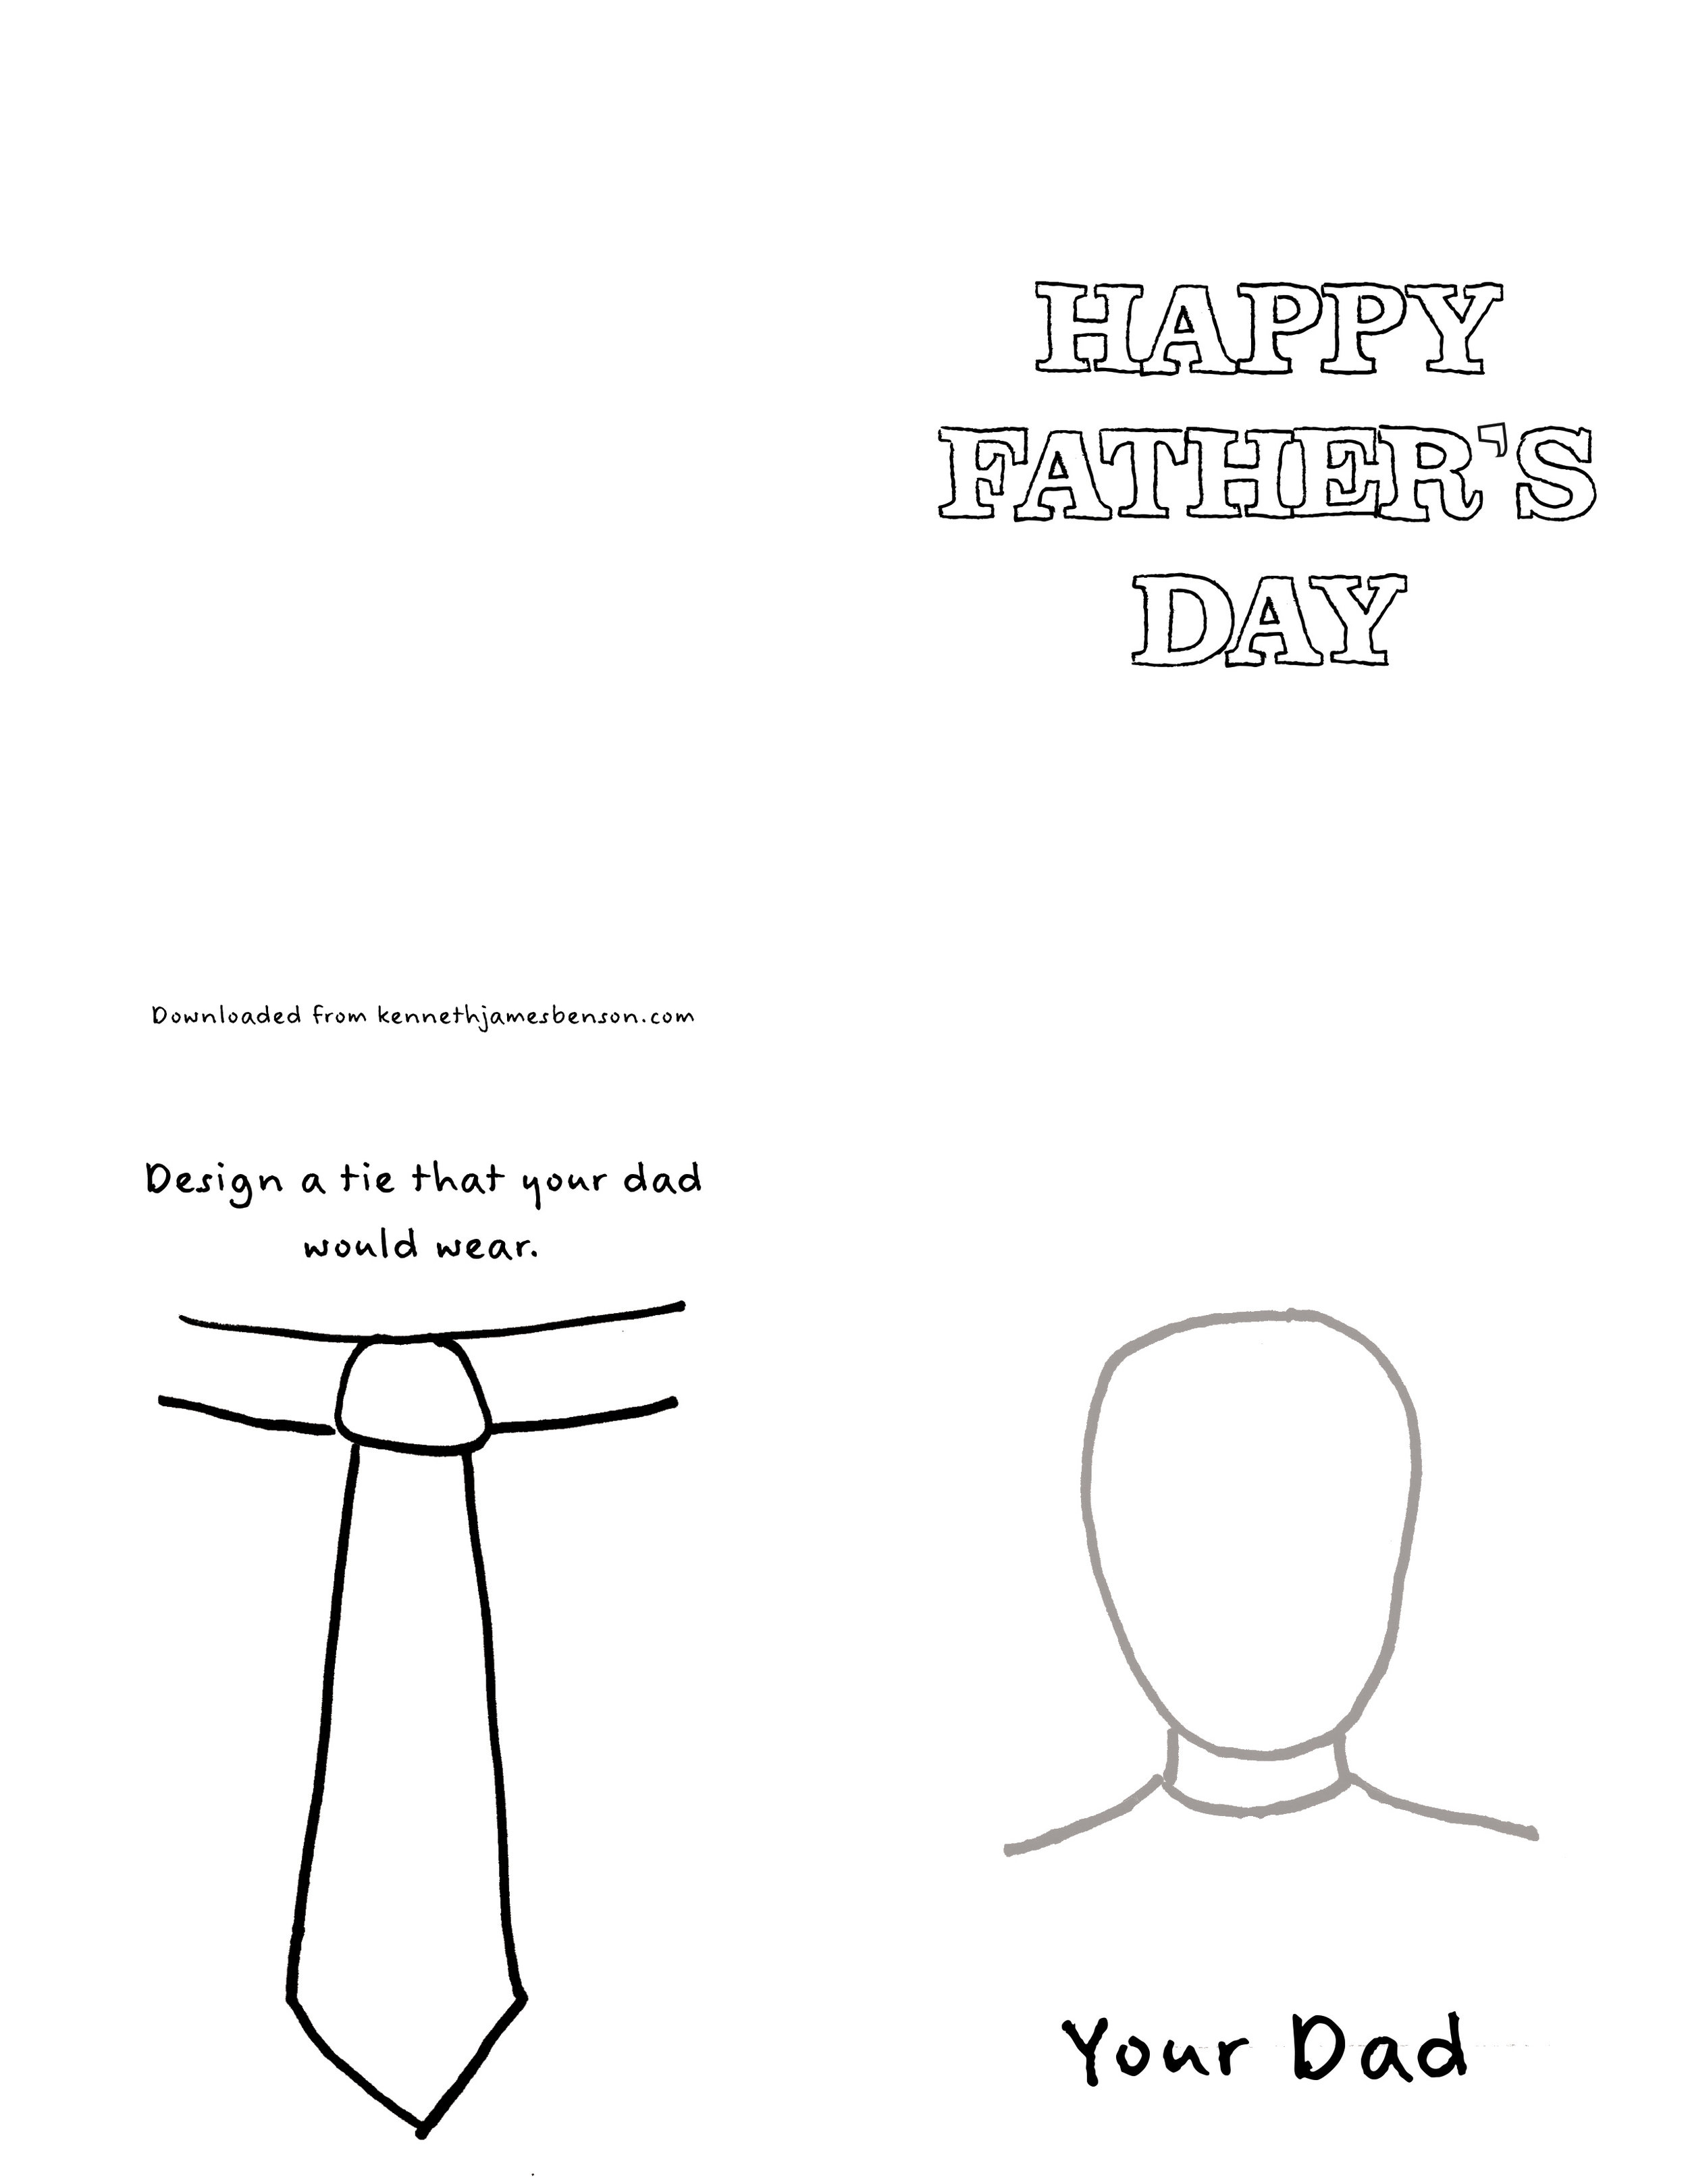 fathers day book page 1.jpg